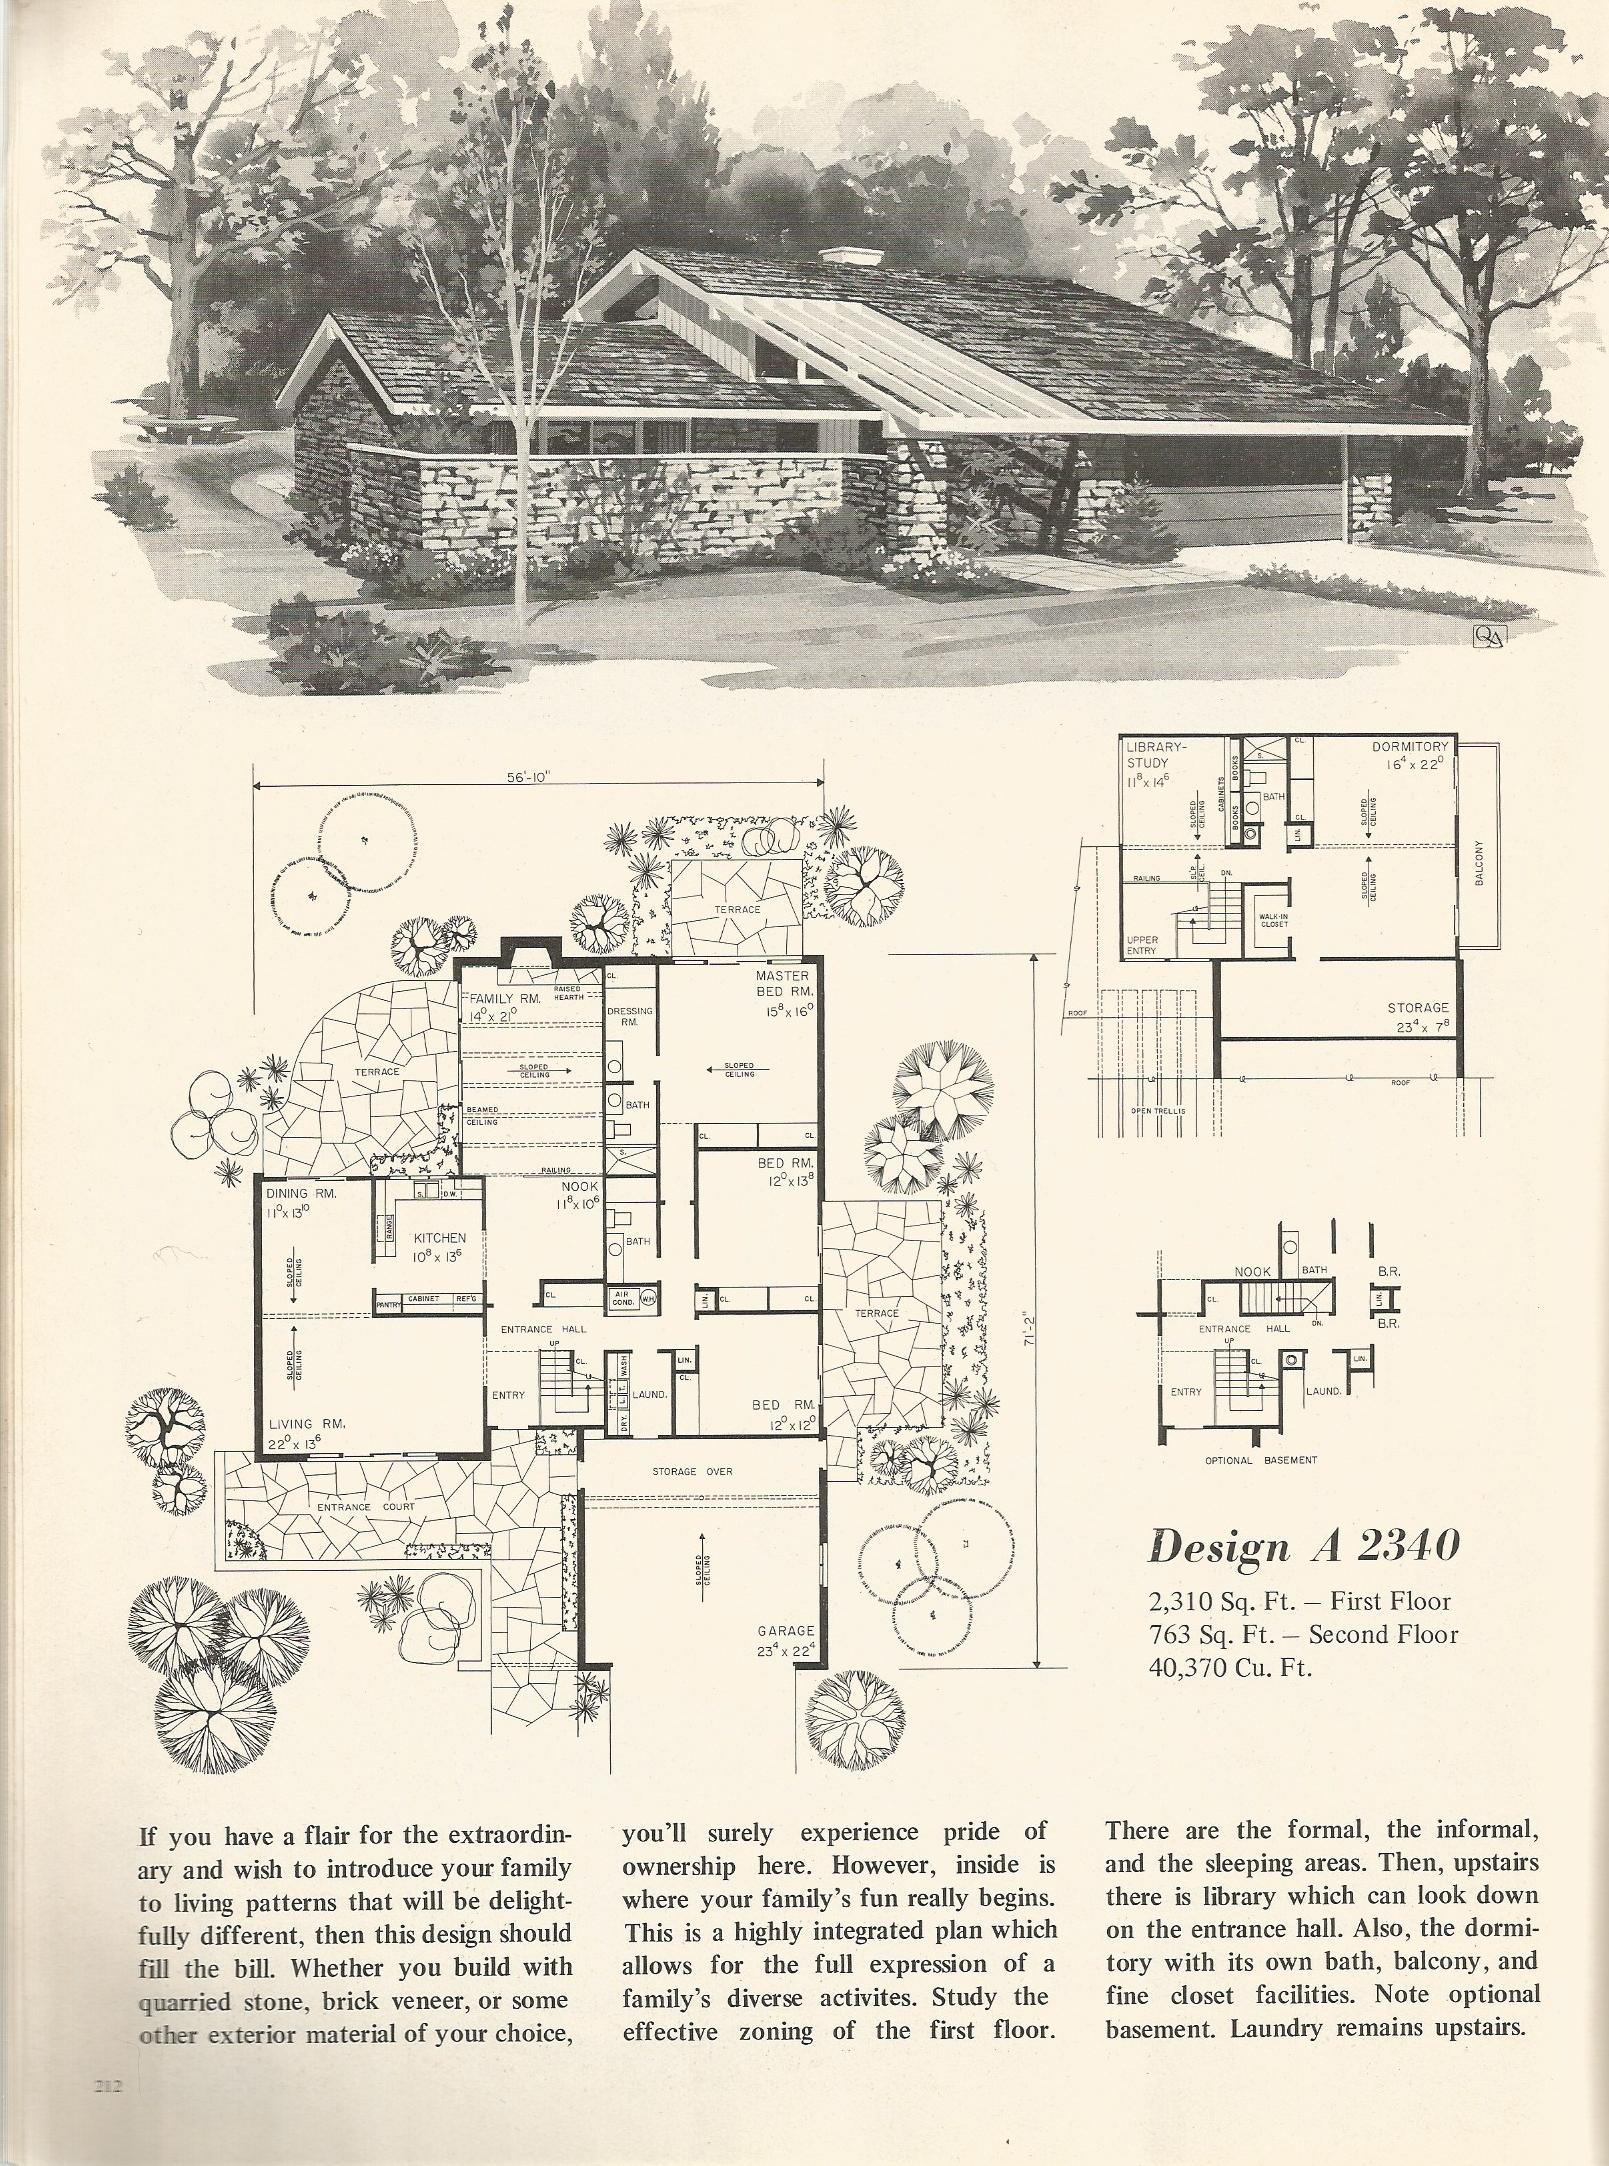 Vintage house plans 2340 antique alter ego for Retro modern house plans